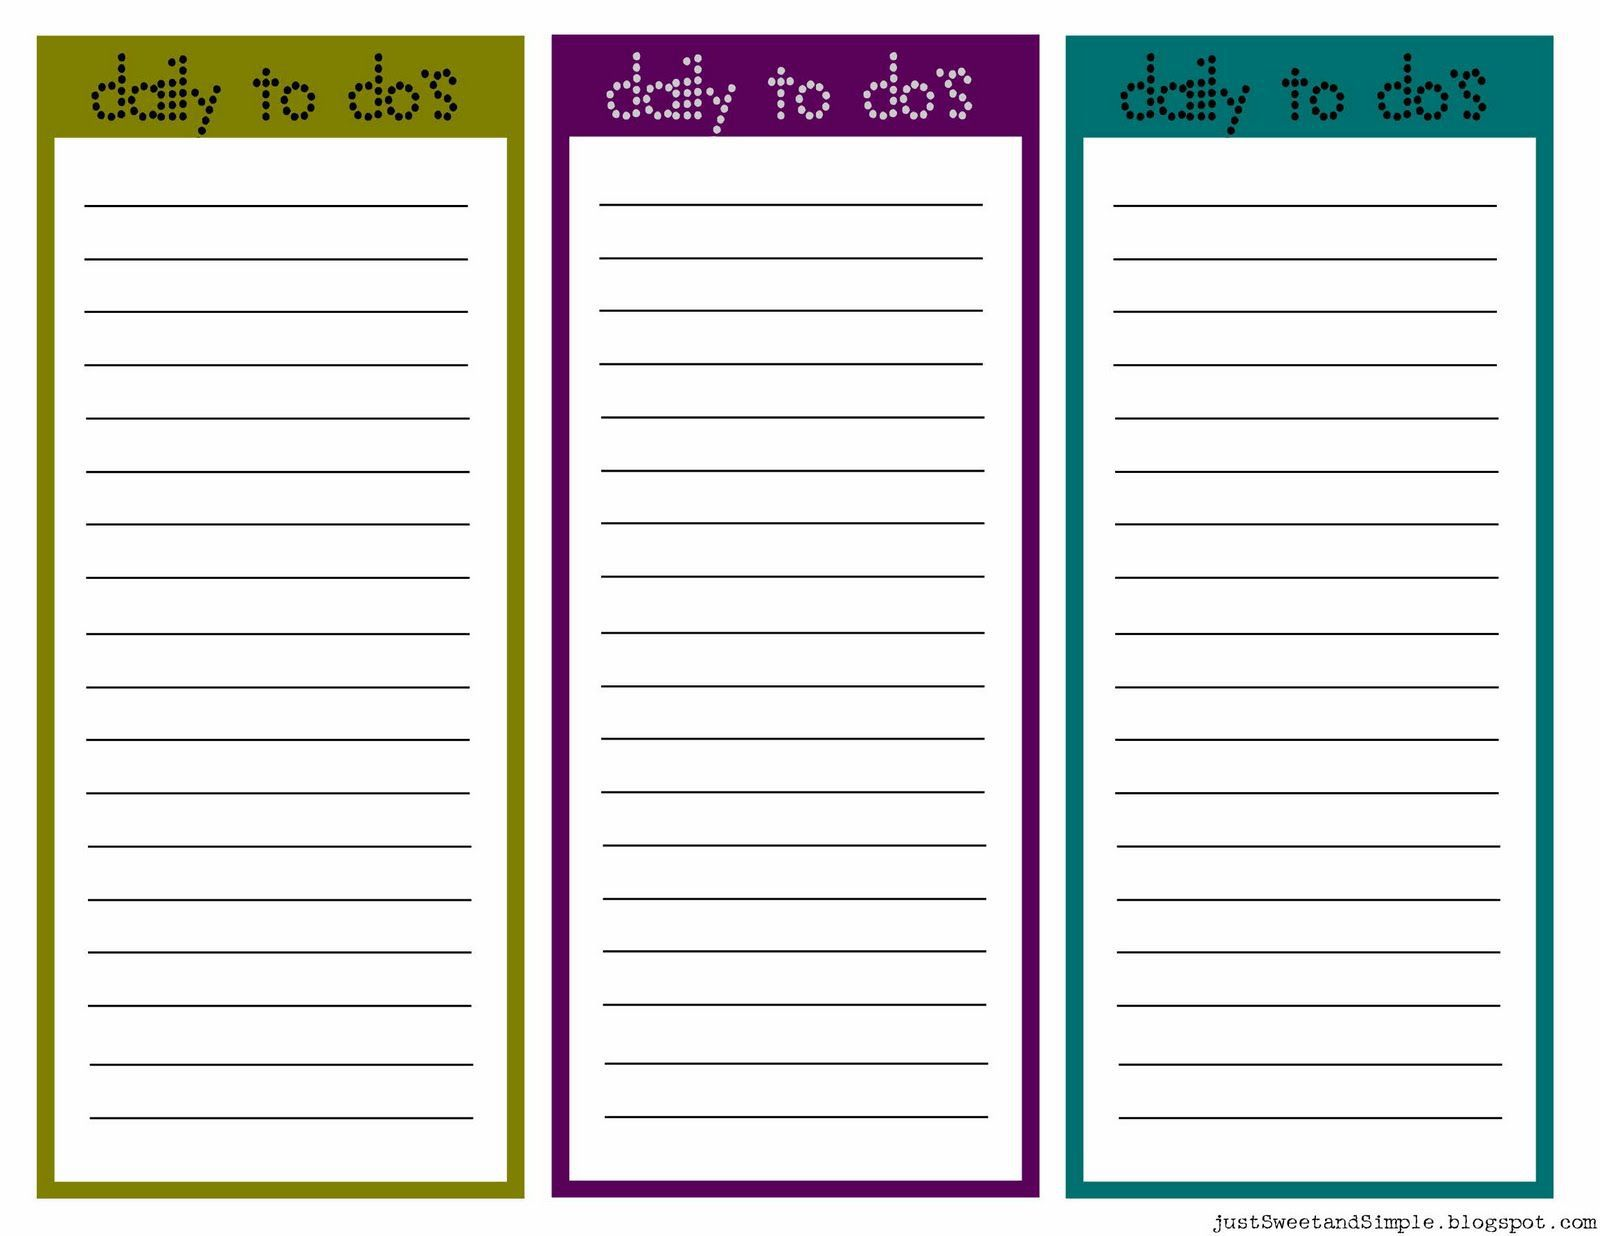 001 Impressive To Do List Template Word High Definition Full